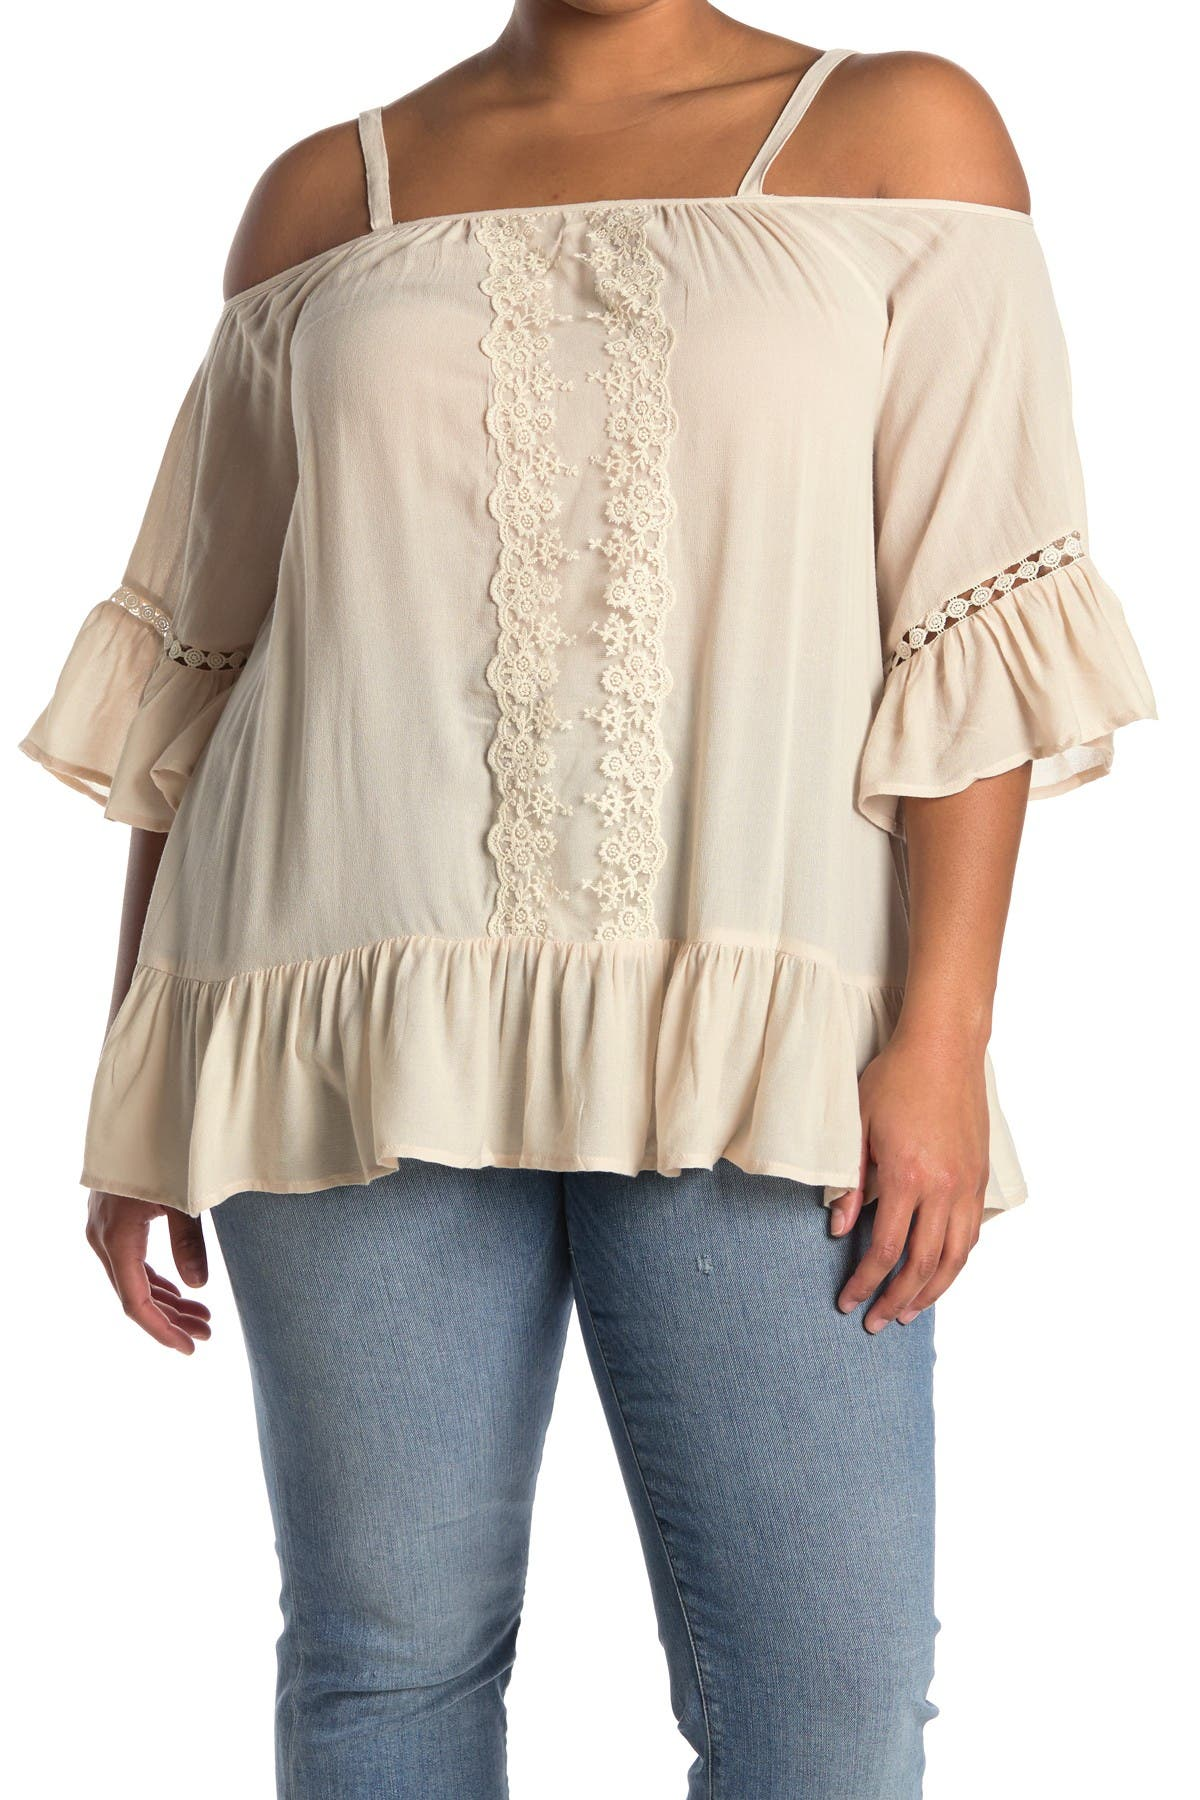 Image of Forgotten Grace Off-The-Shoulder Embroidered Blouse